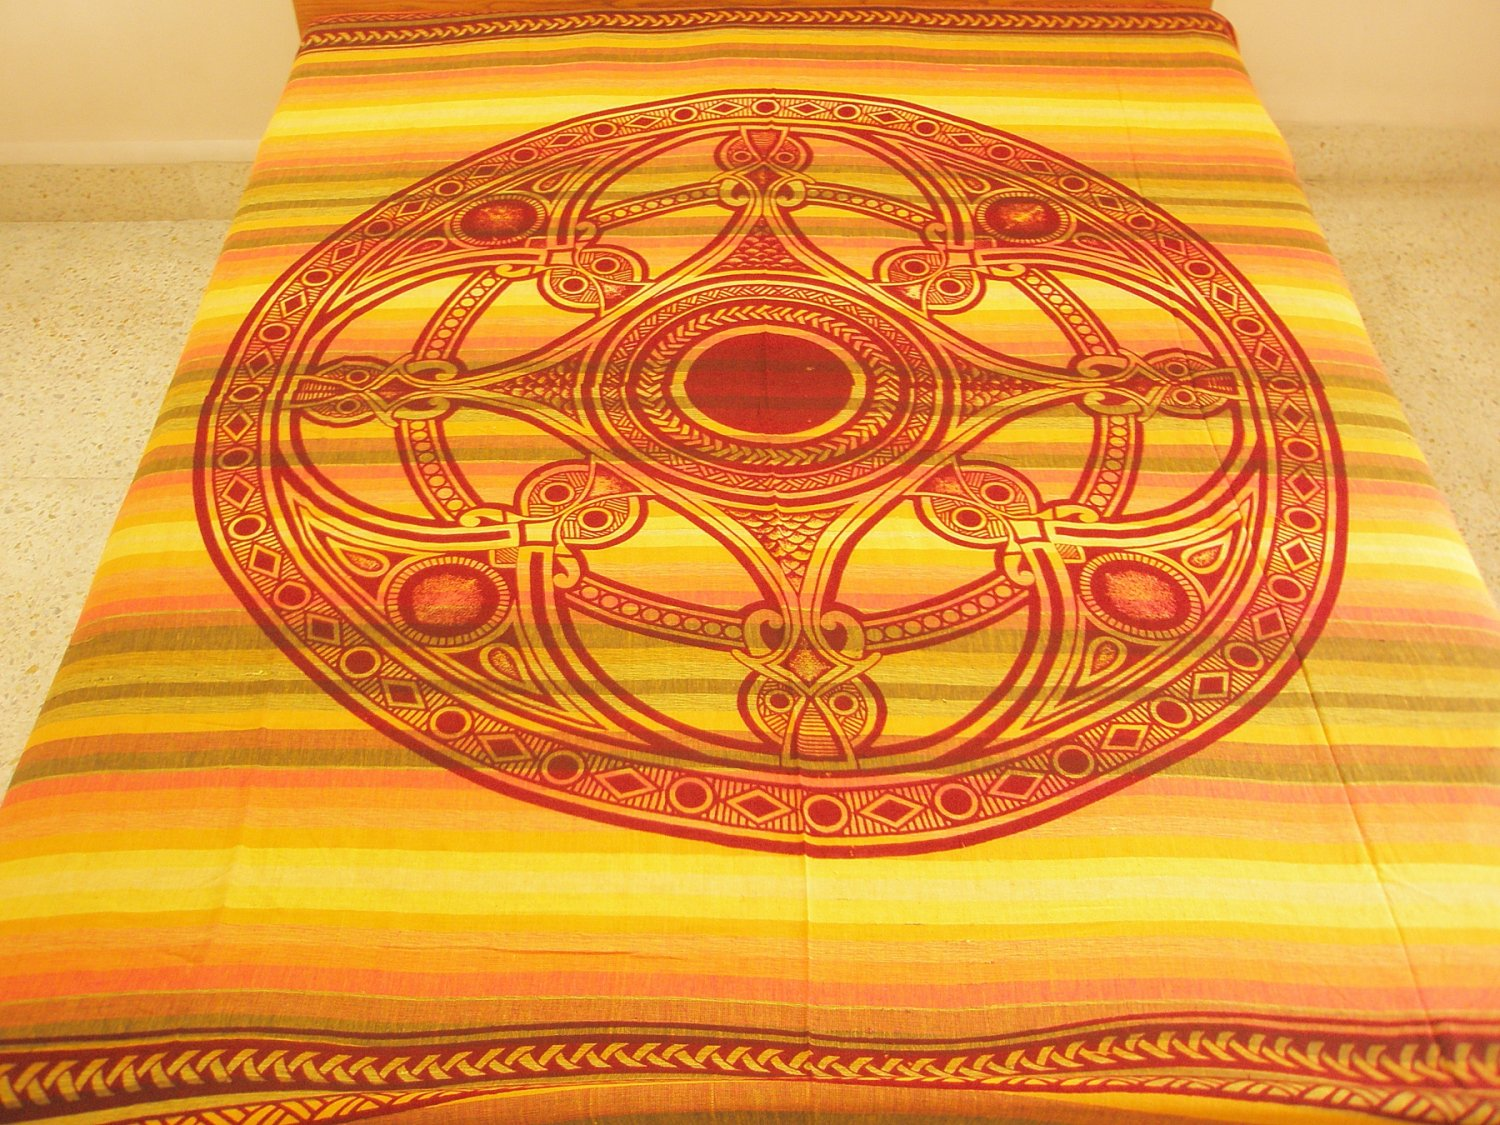 Celtic Print Indian Cotton Bedspread Queen Coverlet Wall Tapestry Wiccan Pagan Bohemian Home Decor